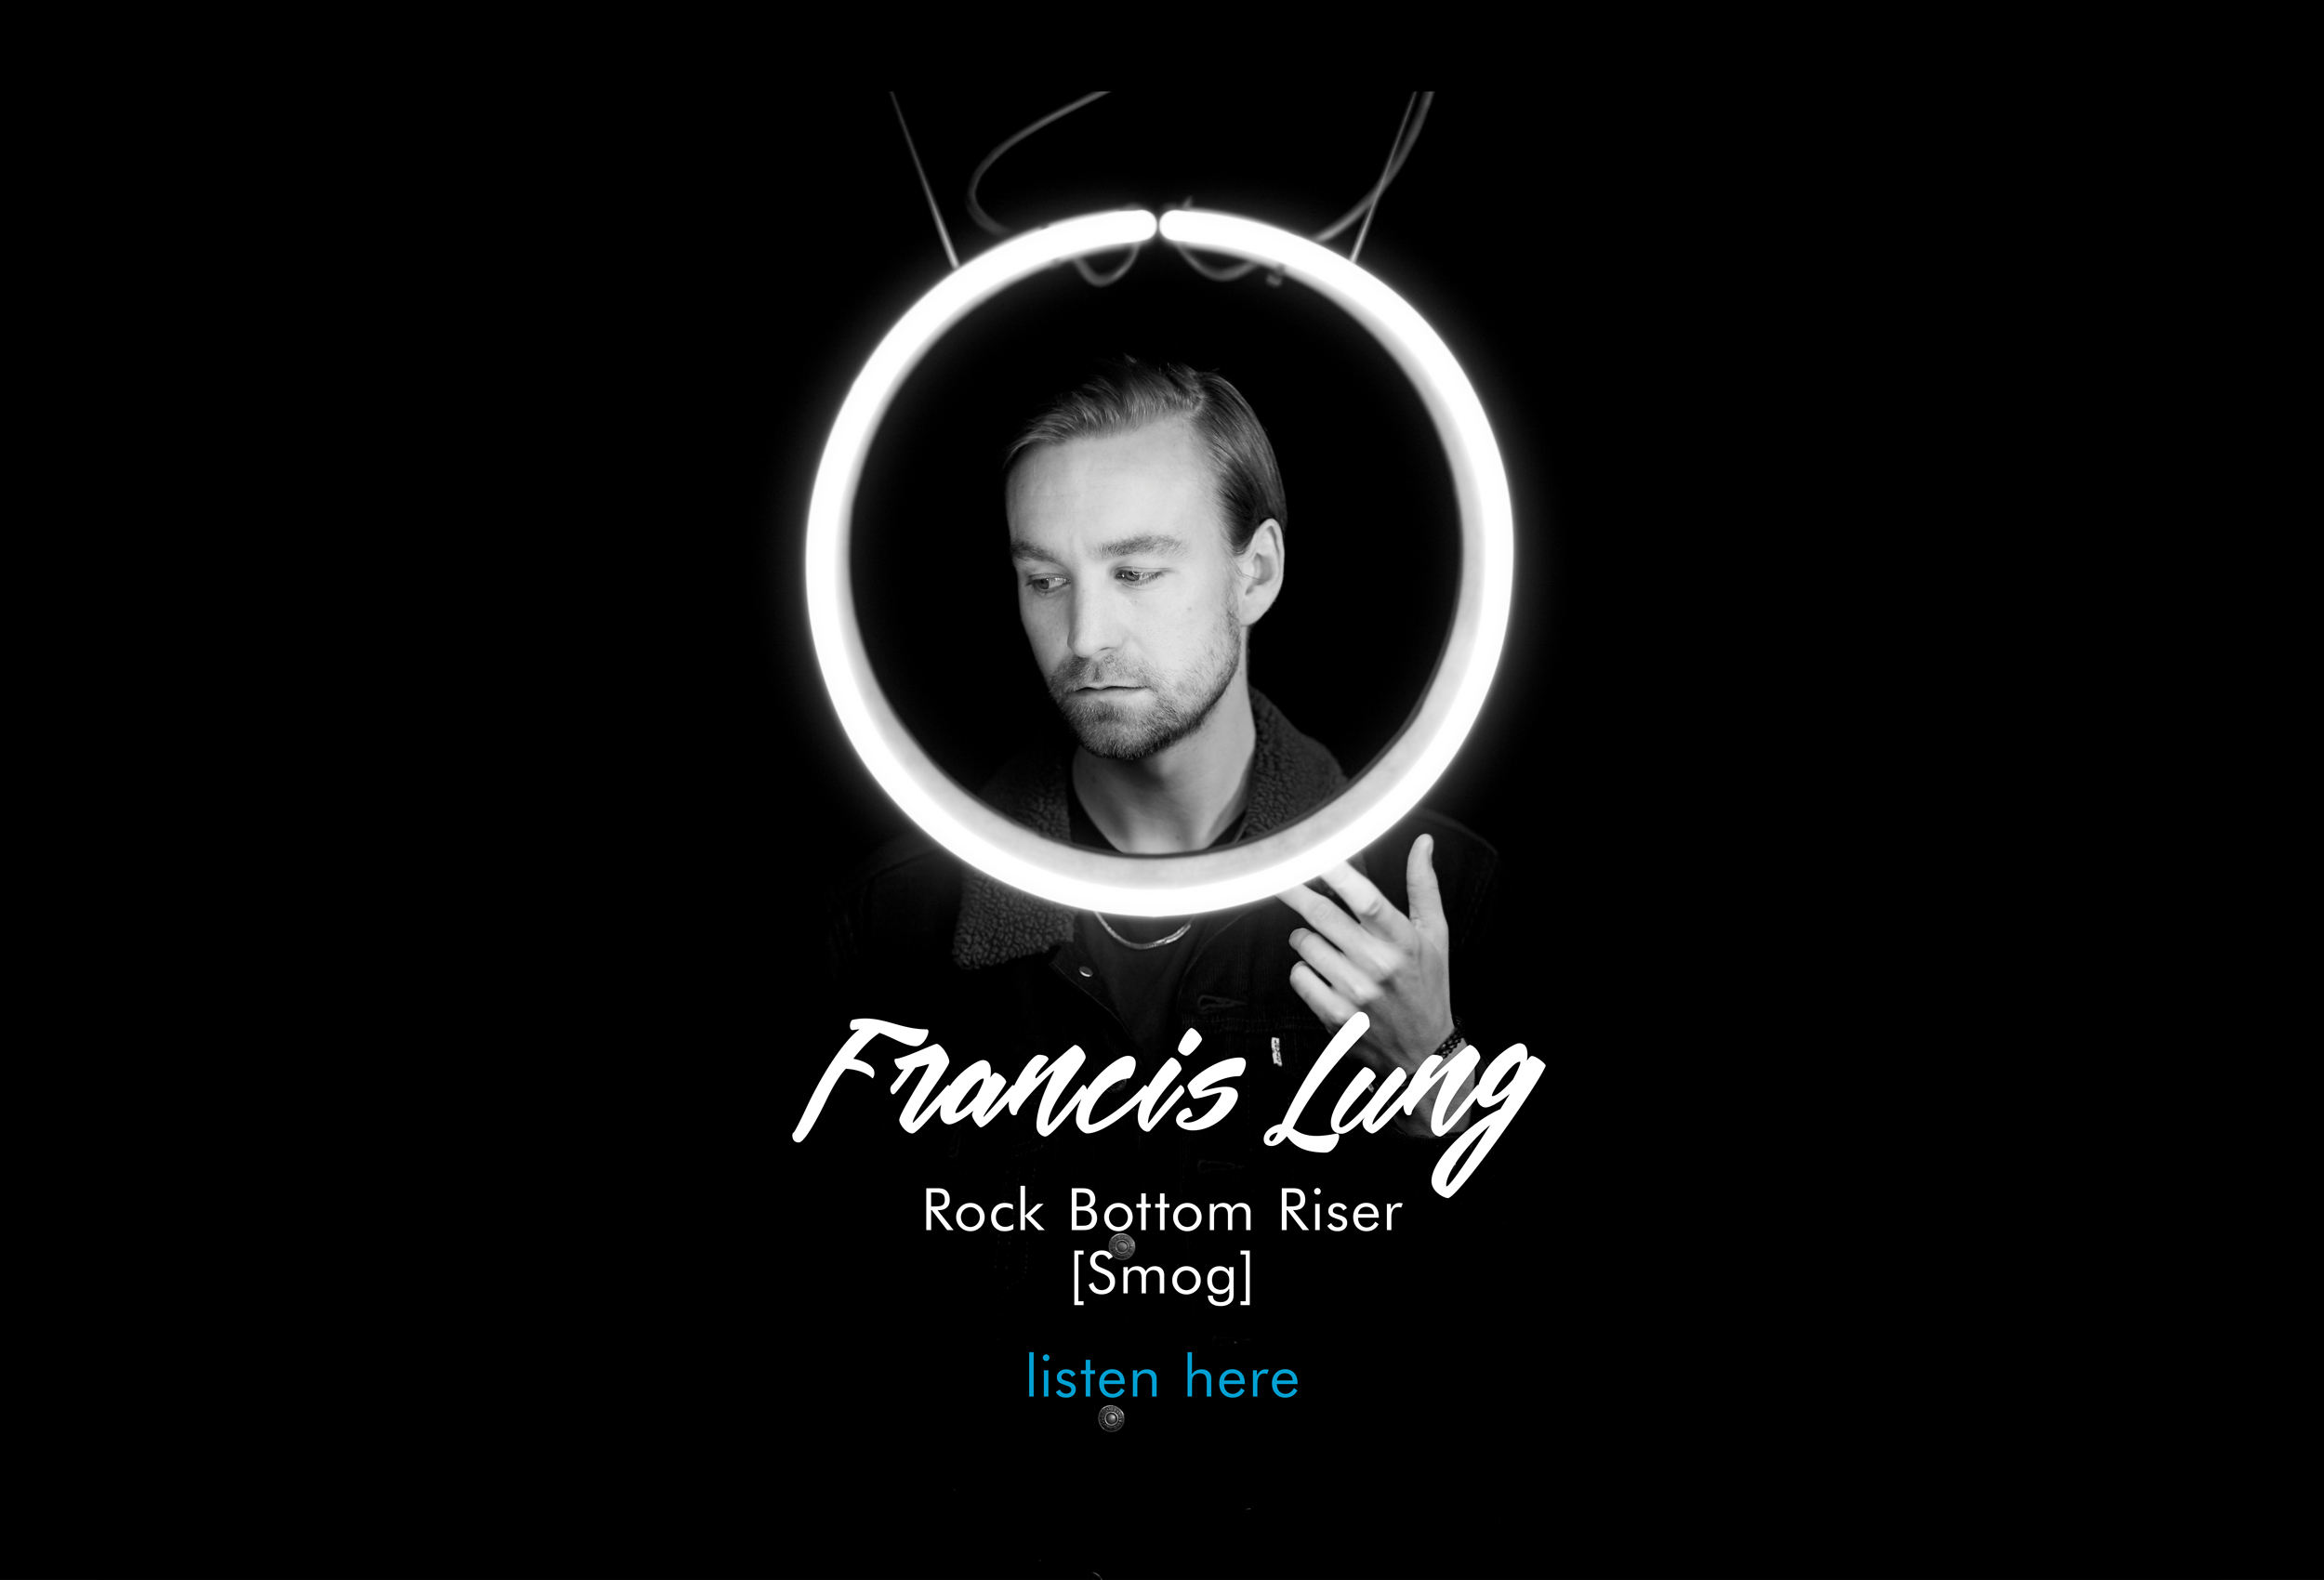 Torch-Songs_Artist_Carousel-Images_Francis-Lung.jpg